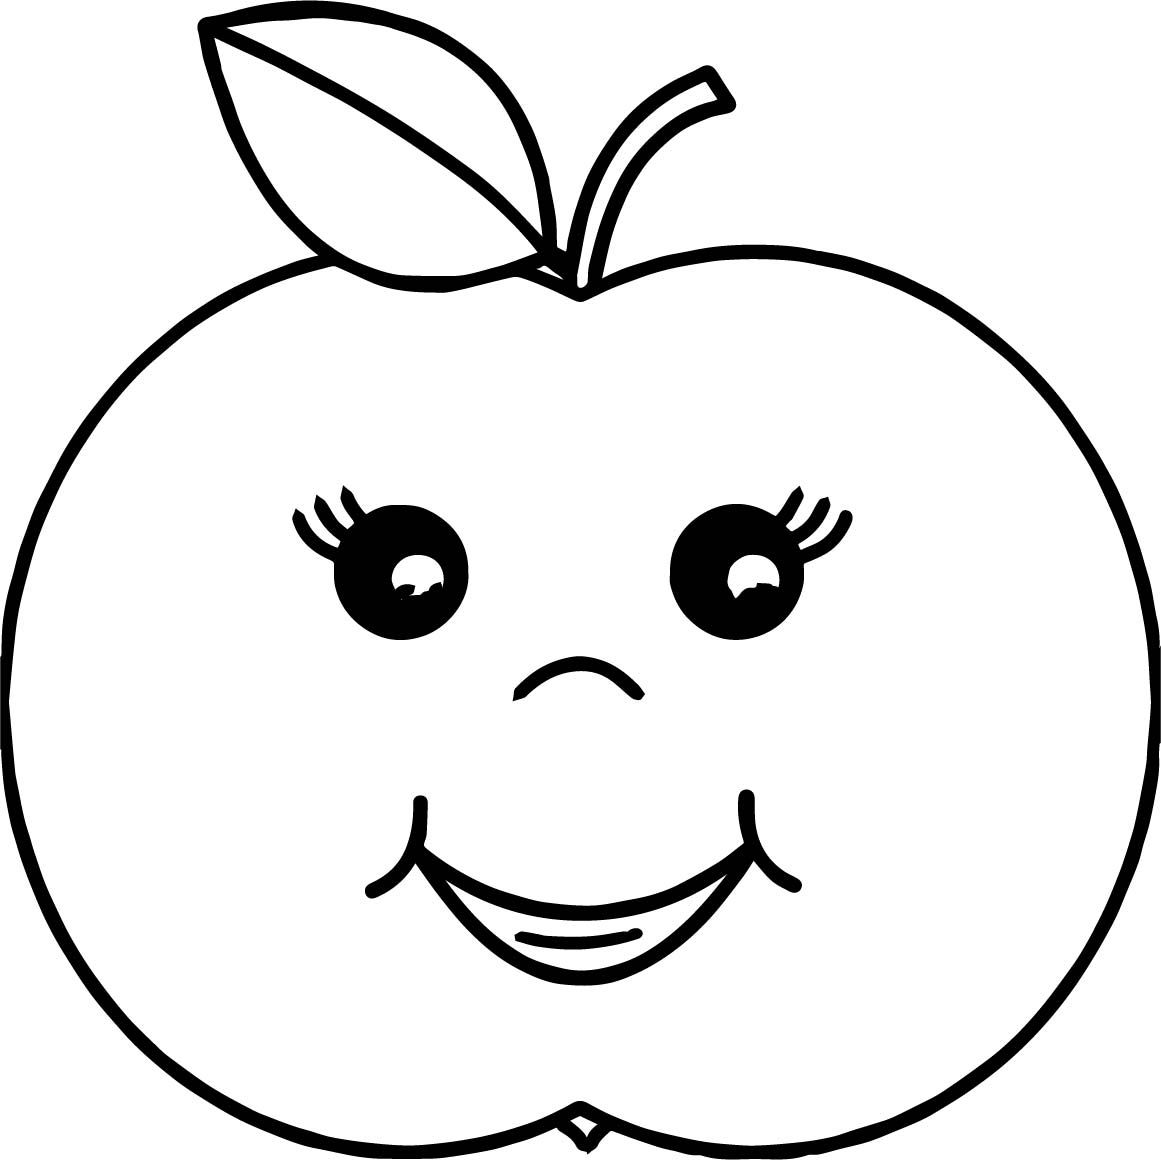 coloring candy apples apple drawing for kids google search apple coloring coloring apples candy